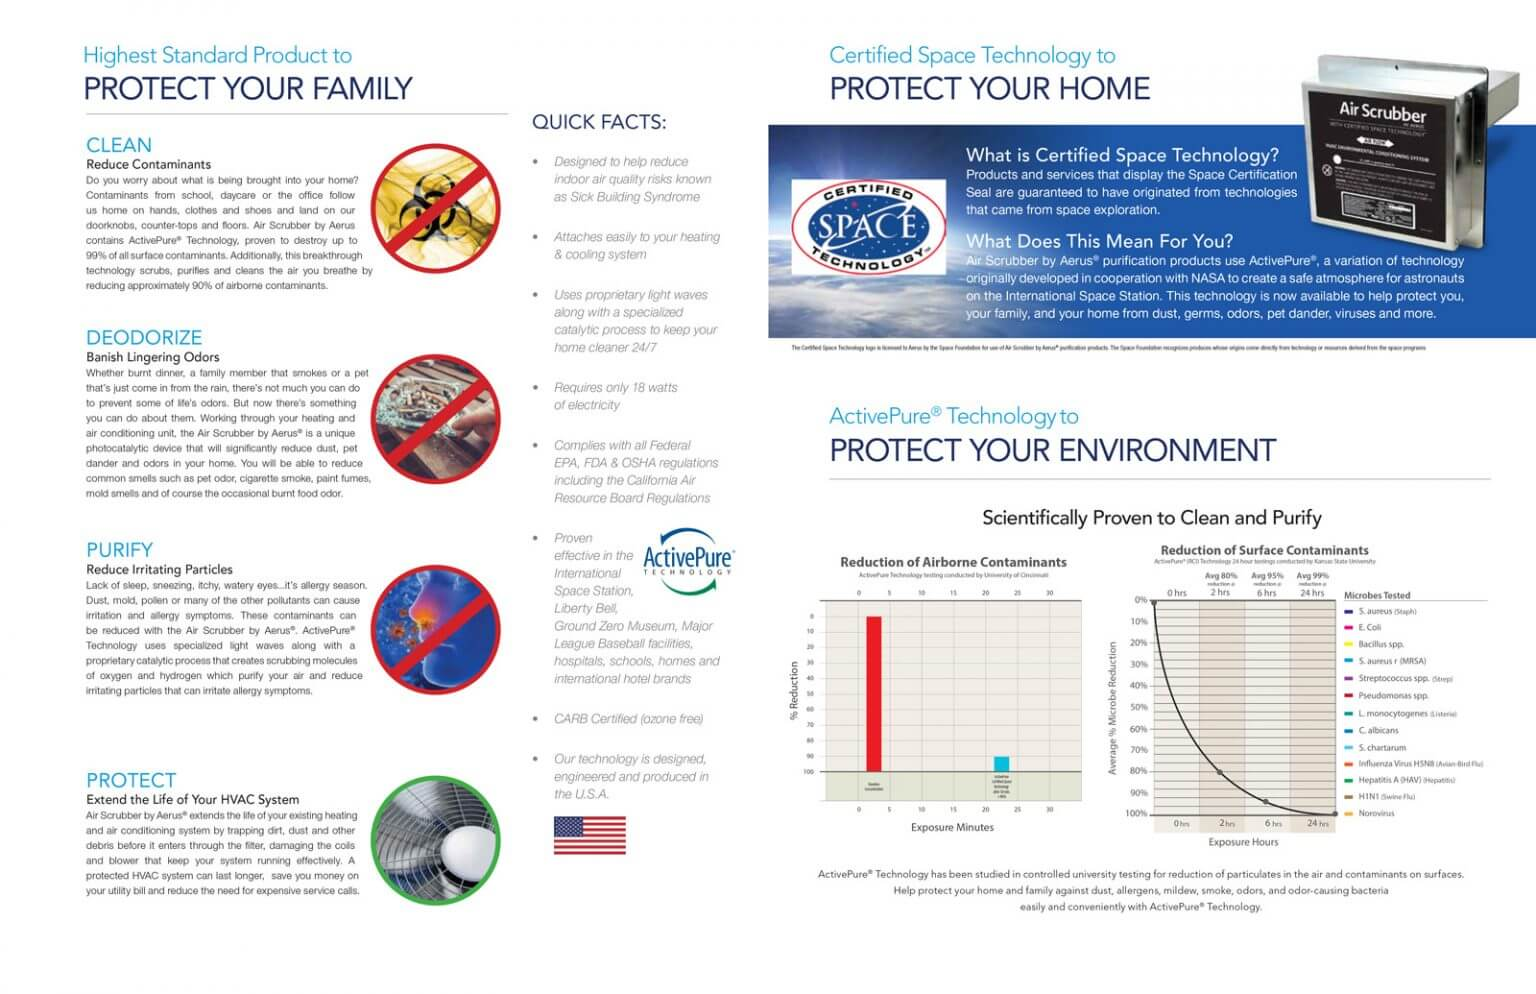 An informational flyer about Air Scrubber Plus describing how the product protects your family, home and environment by cleaning, deodorizing and purifying both airborne and surface contaminants using Active Pure Technology and Certified Space Technology.